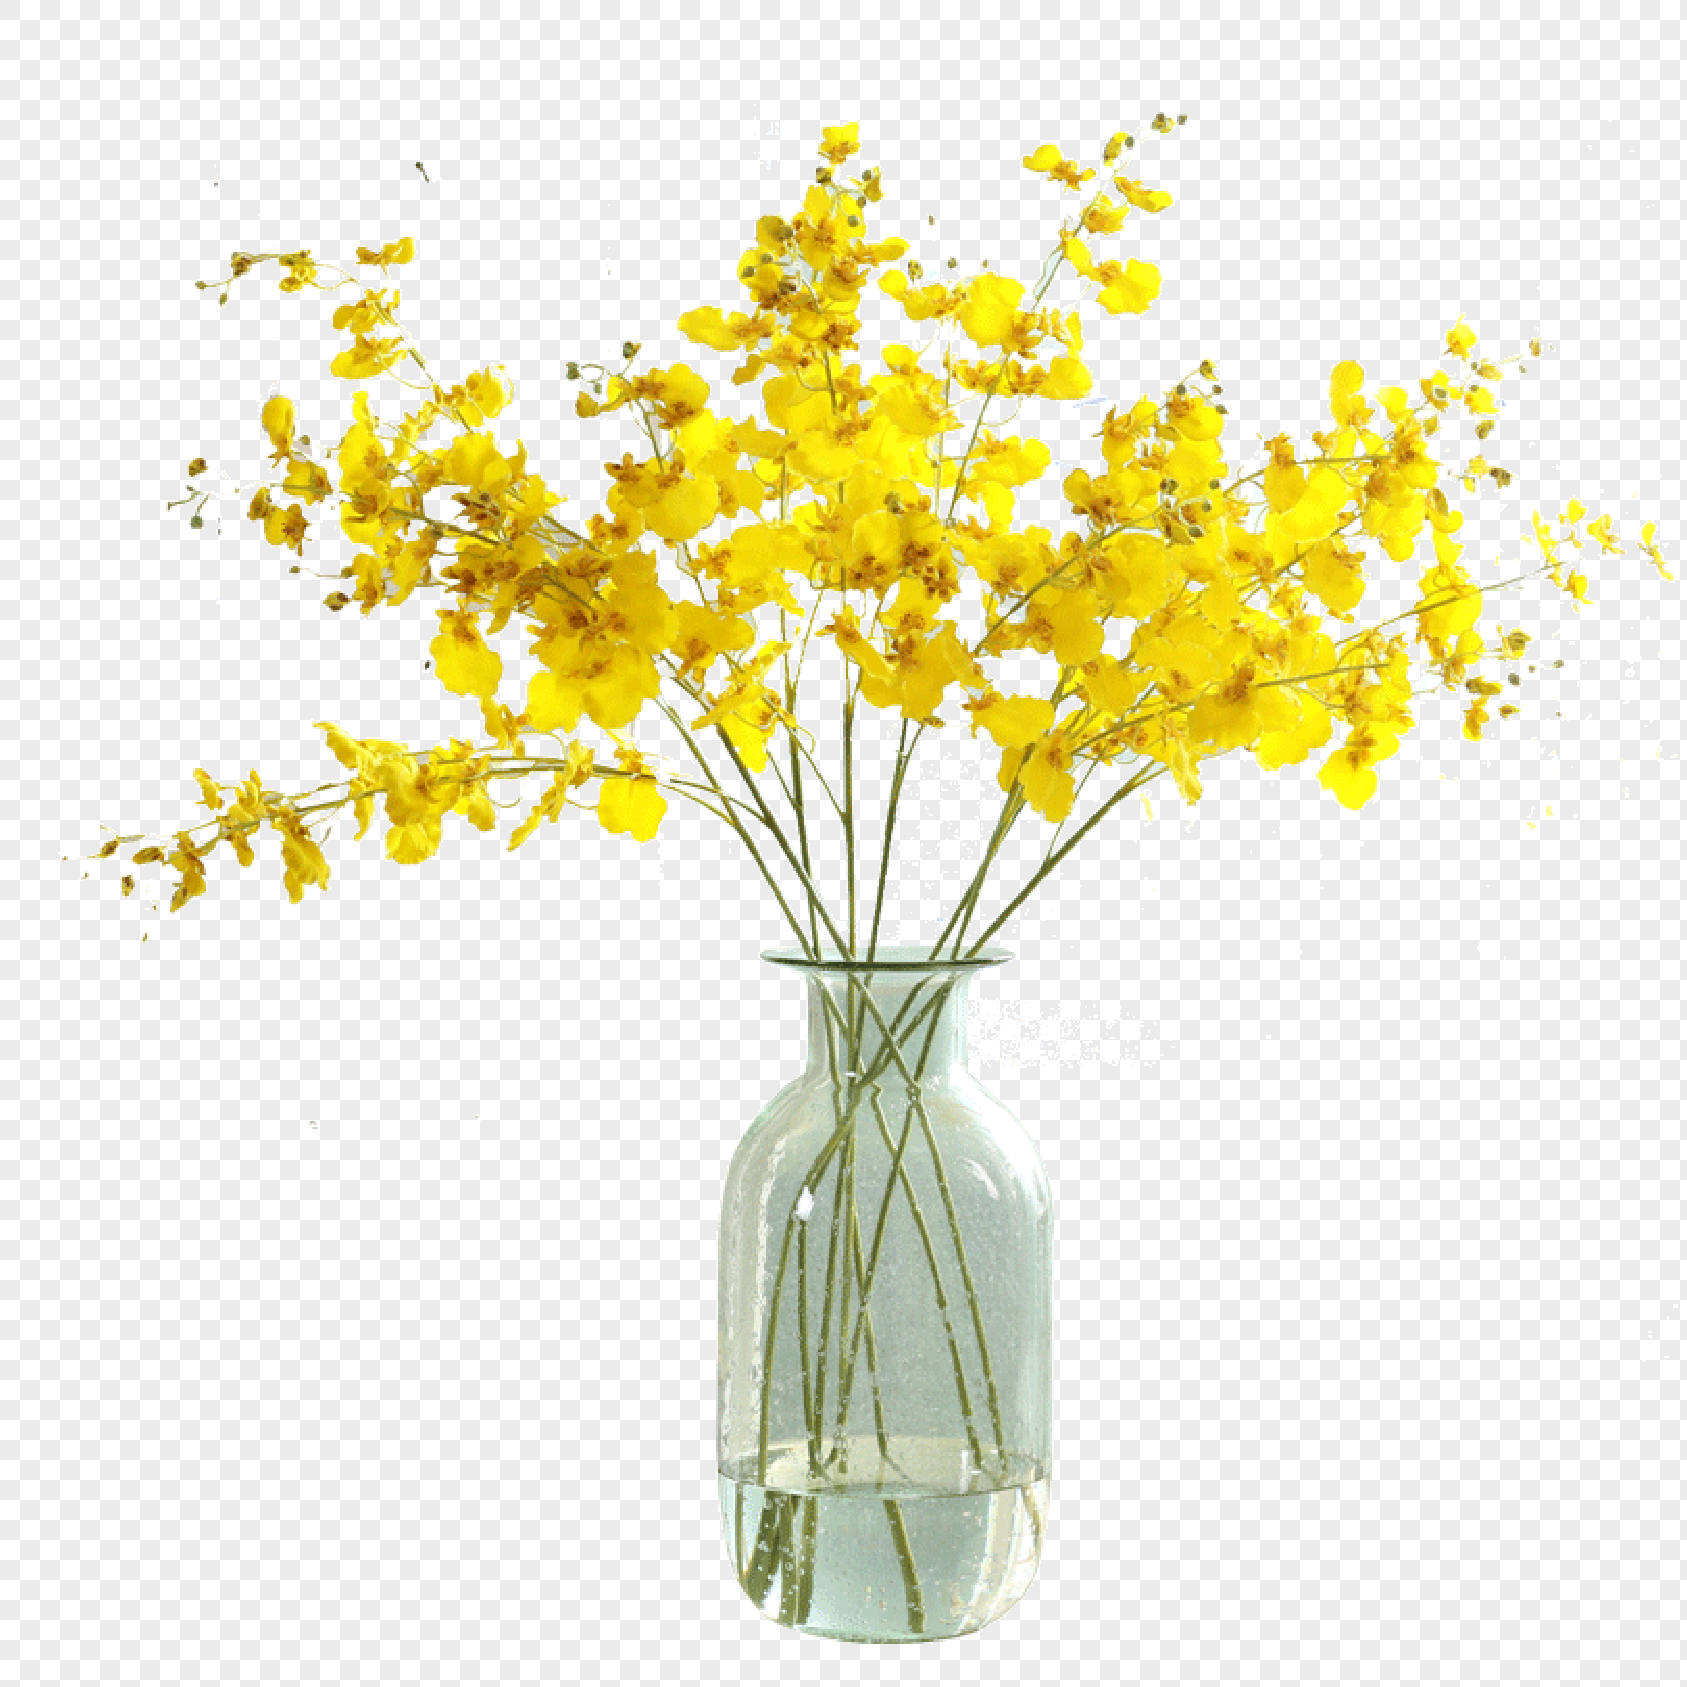 Yellow Dance Orchid Flower Imitation Flower Decoration Flower Png